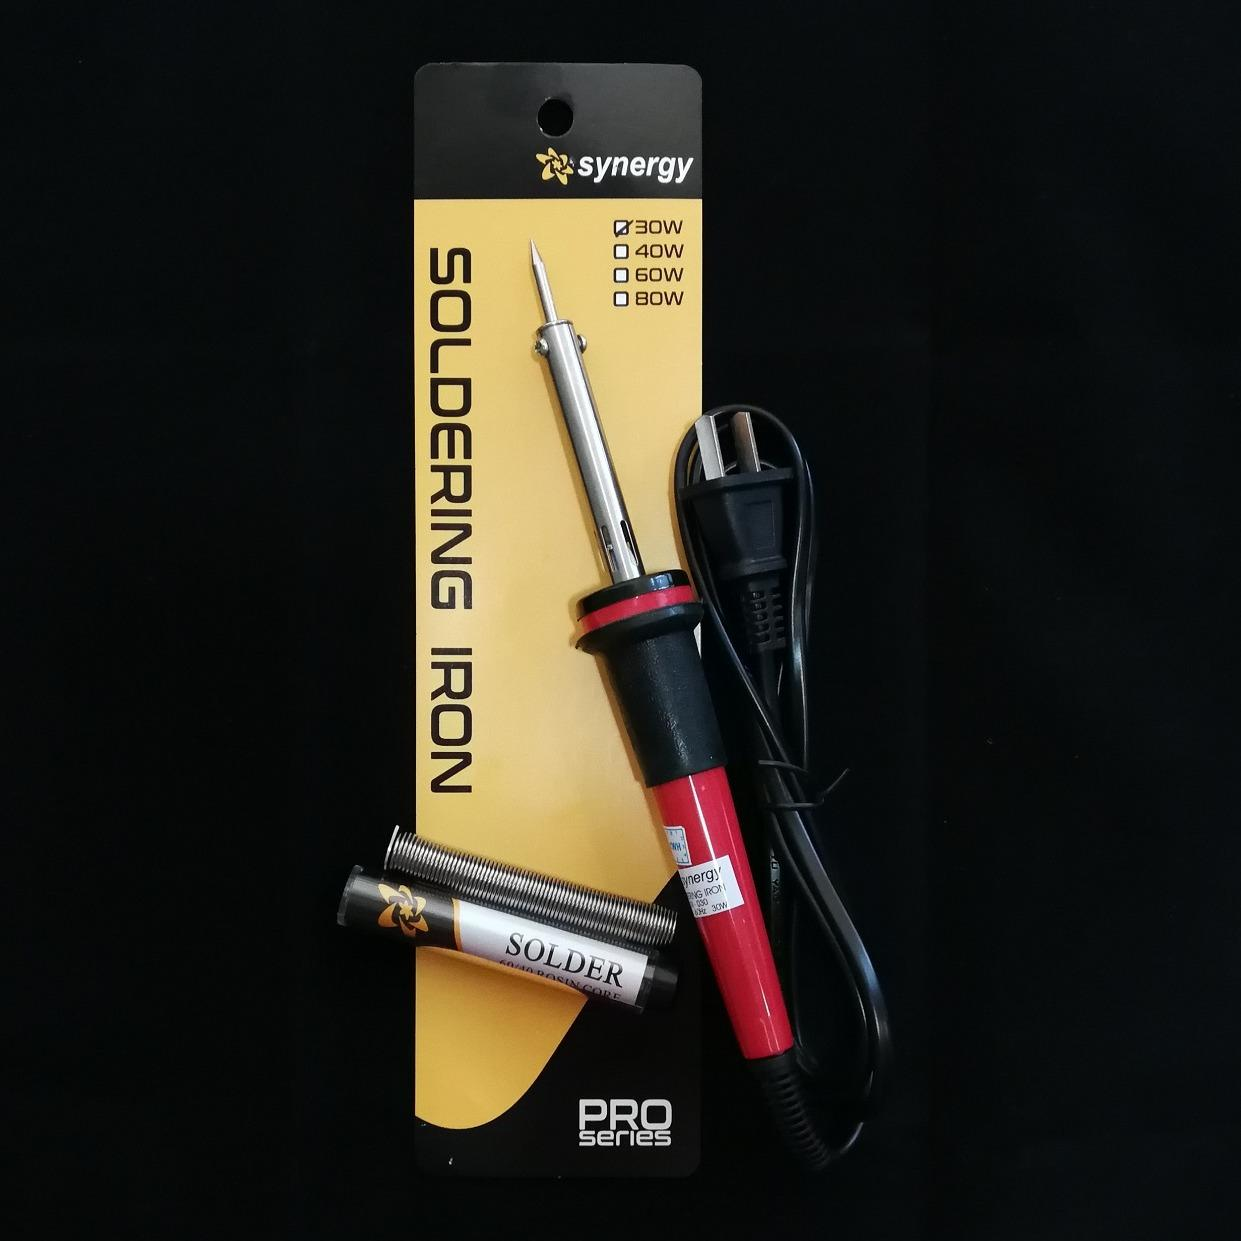 Soldering For Sale Solder Equipment Prices Brands Review In Tools Bga Tool Kit 12 Different Circuit Board Synergy Iron 30w W Rosin Core Ssi 030 Pro Series